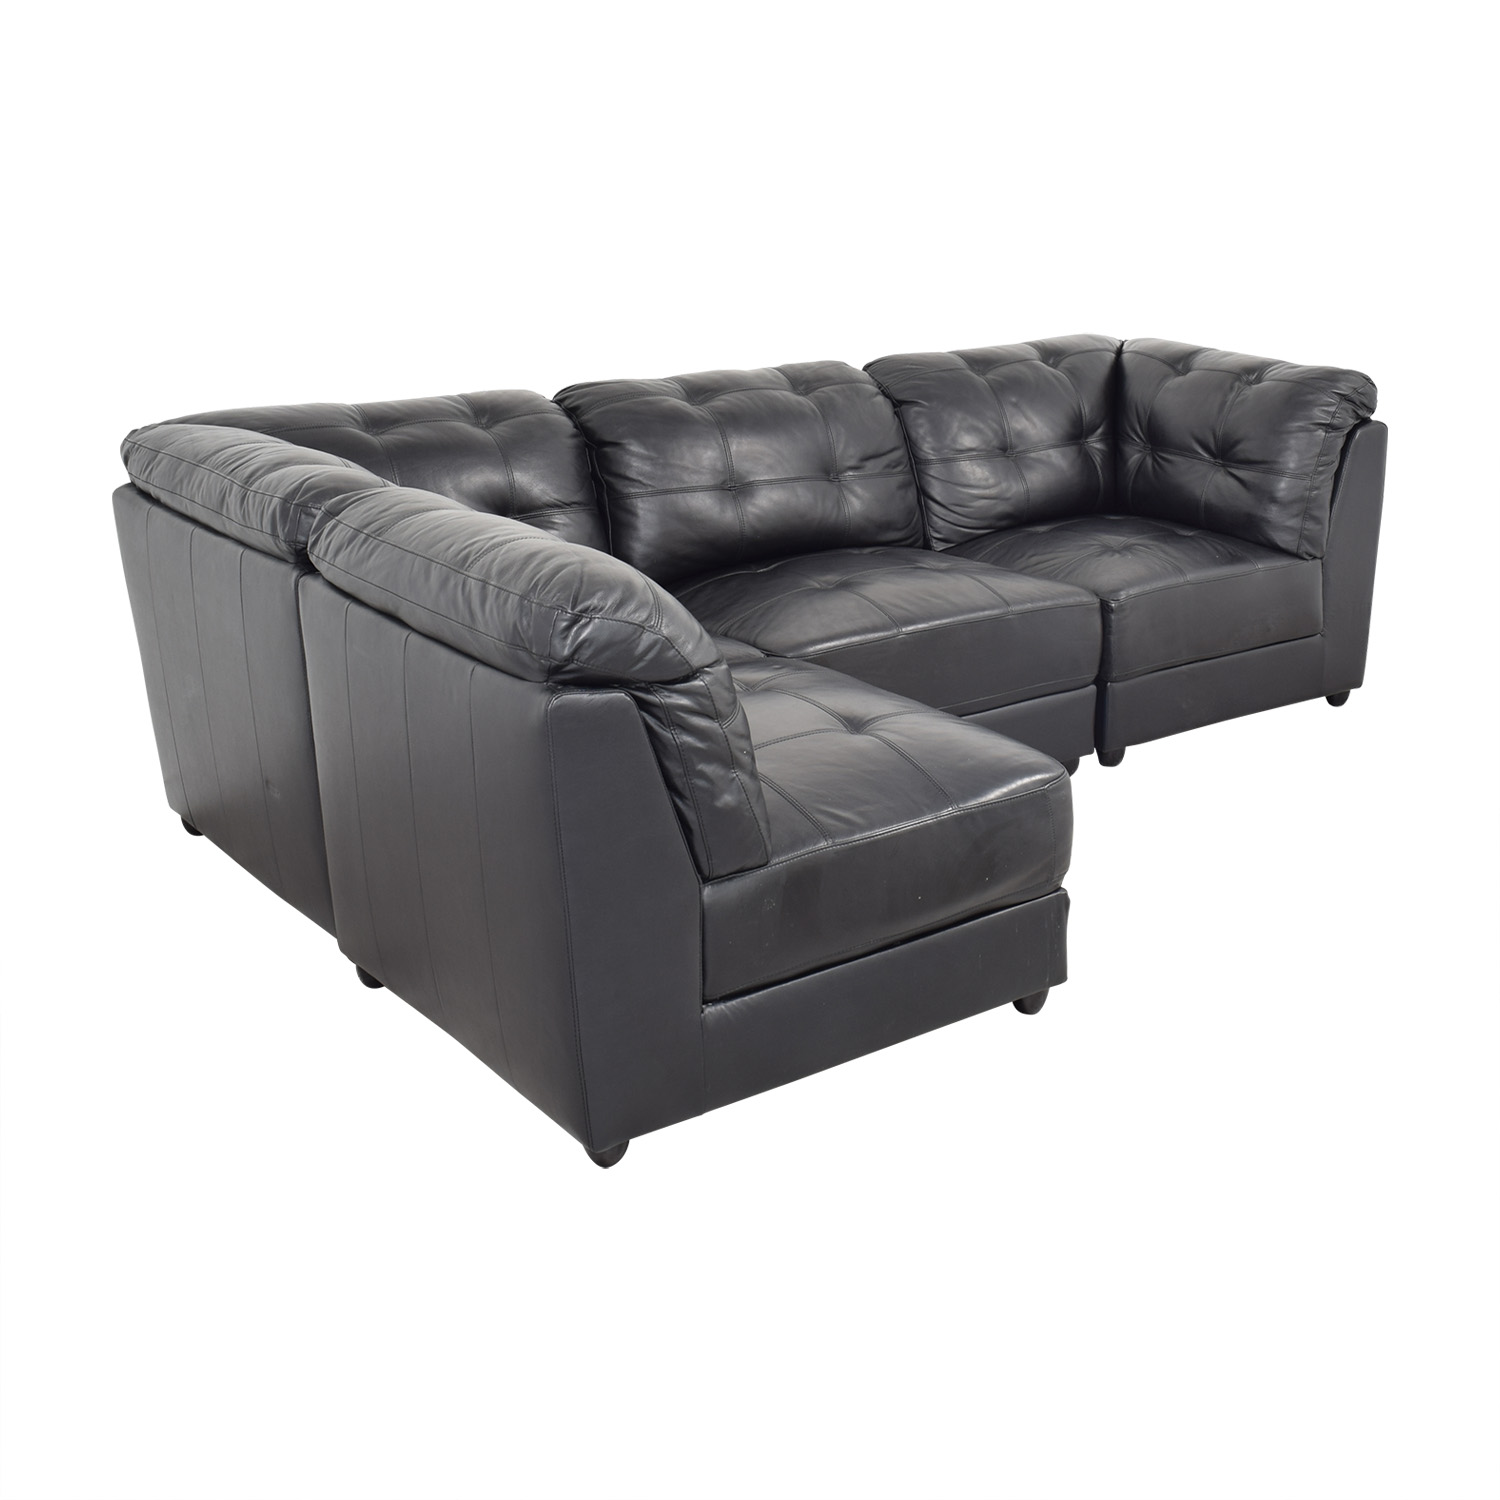 buy Abbyson Ella 5-Piece Black Modular Leather Sectional with Ottoman Abbyson